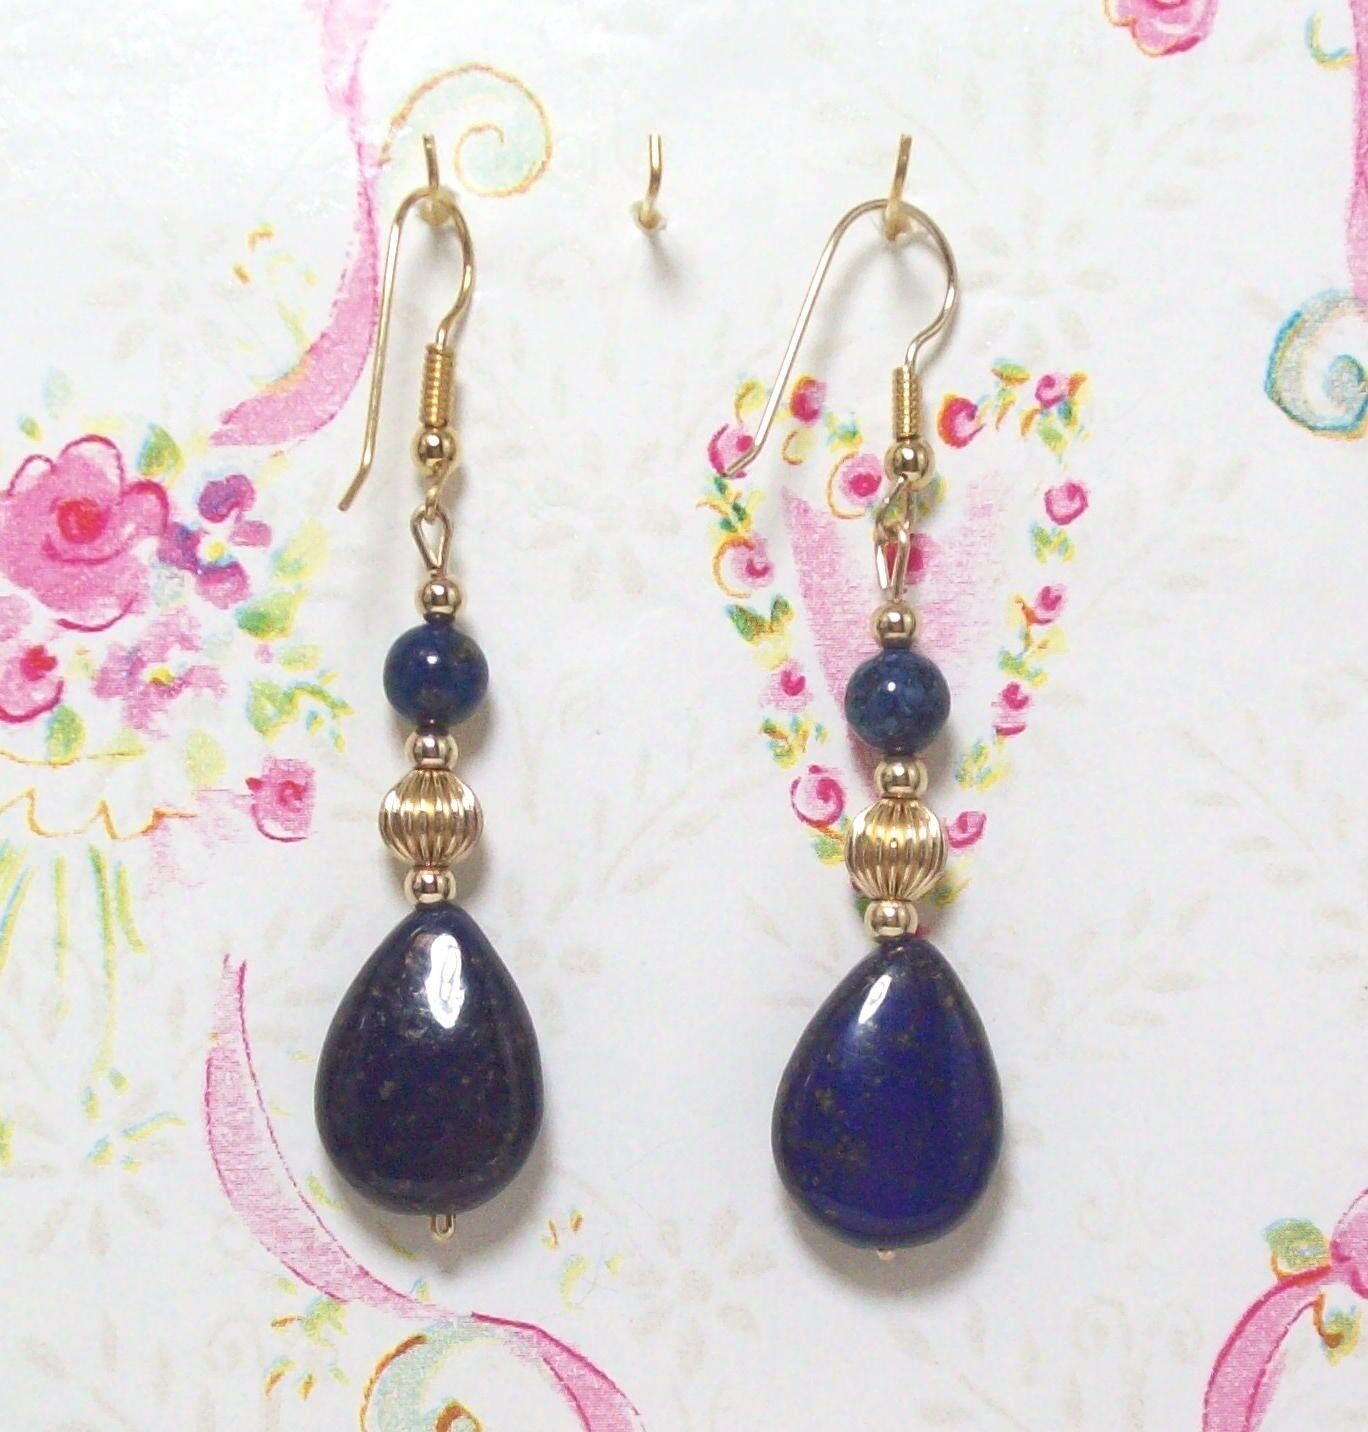 Lapis Lbluei Beaded Earrings With 14K gold Filled 2 1 4  Long. LAPGF003